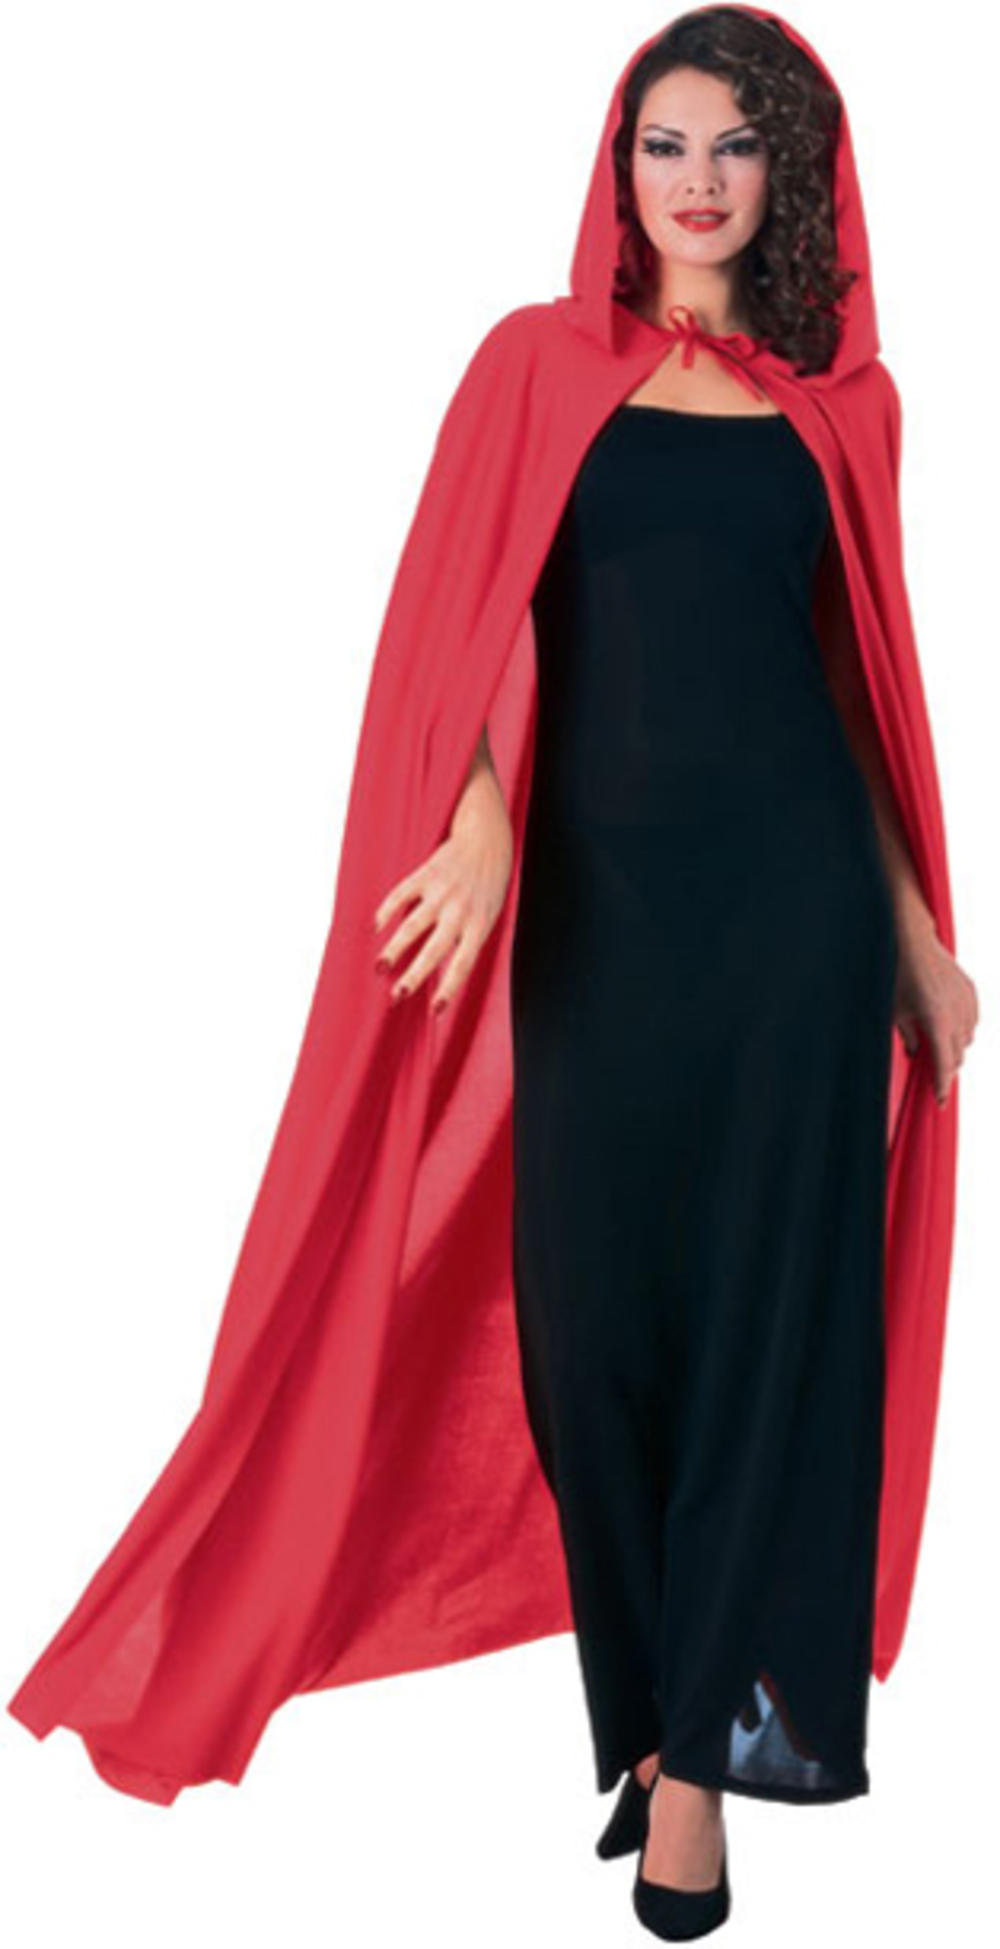 Red Full Length Hooded Cape Costume Accessory